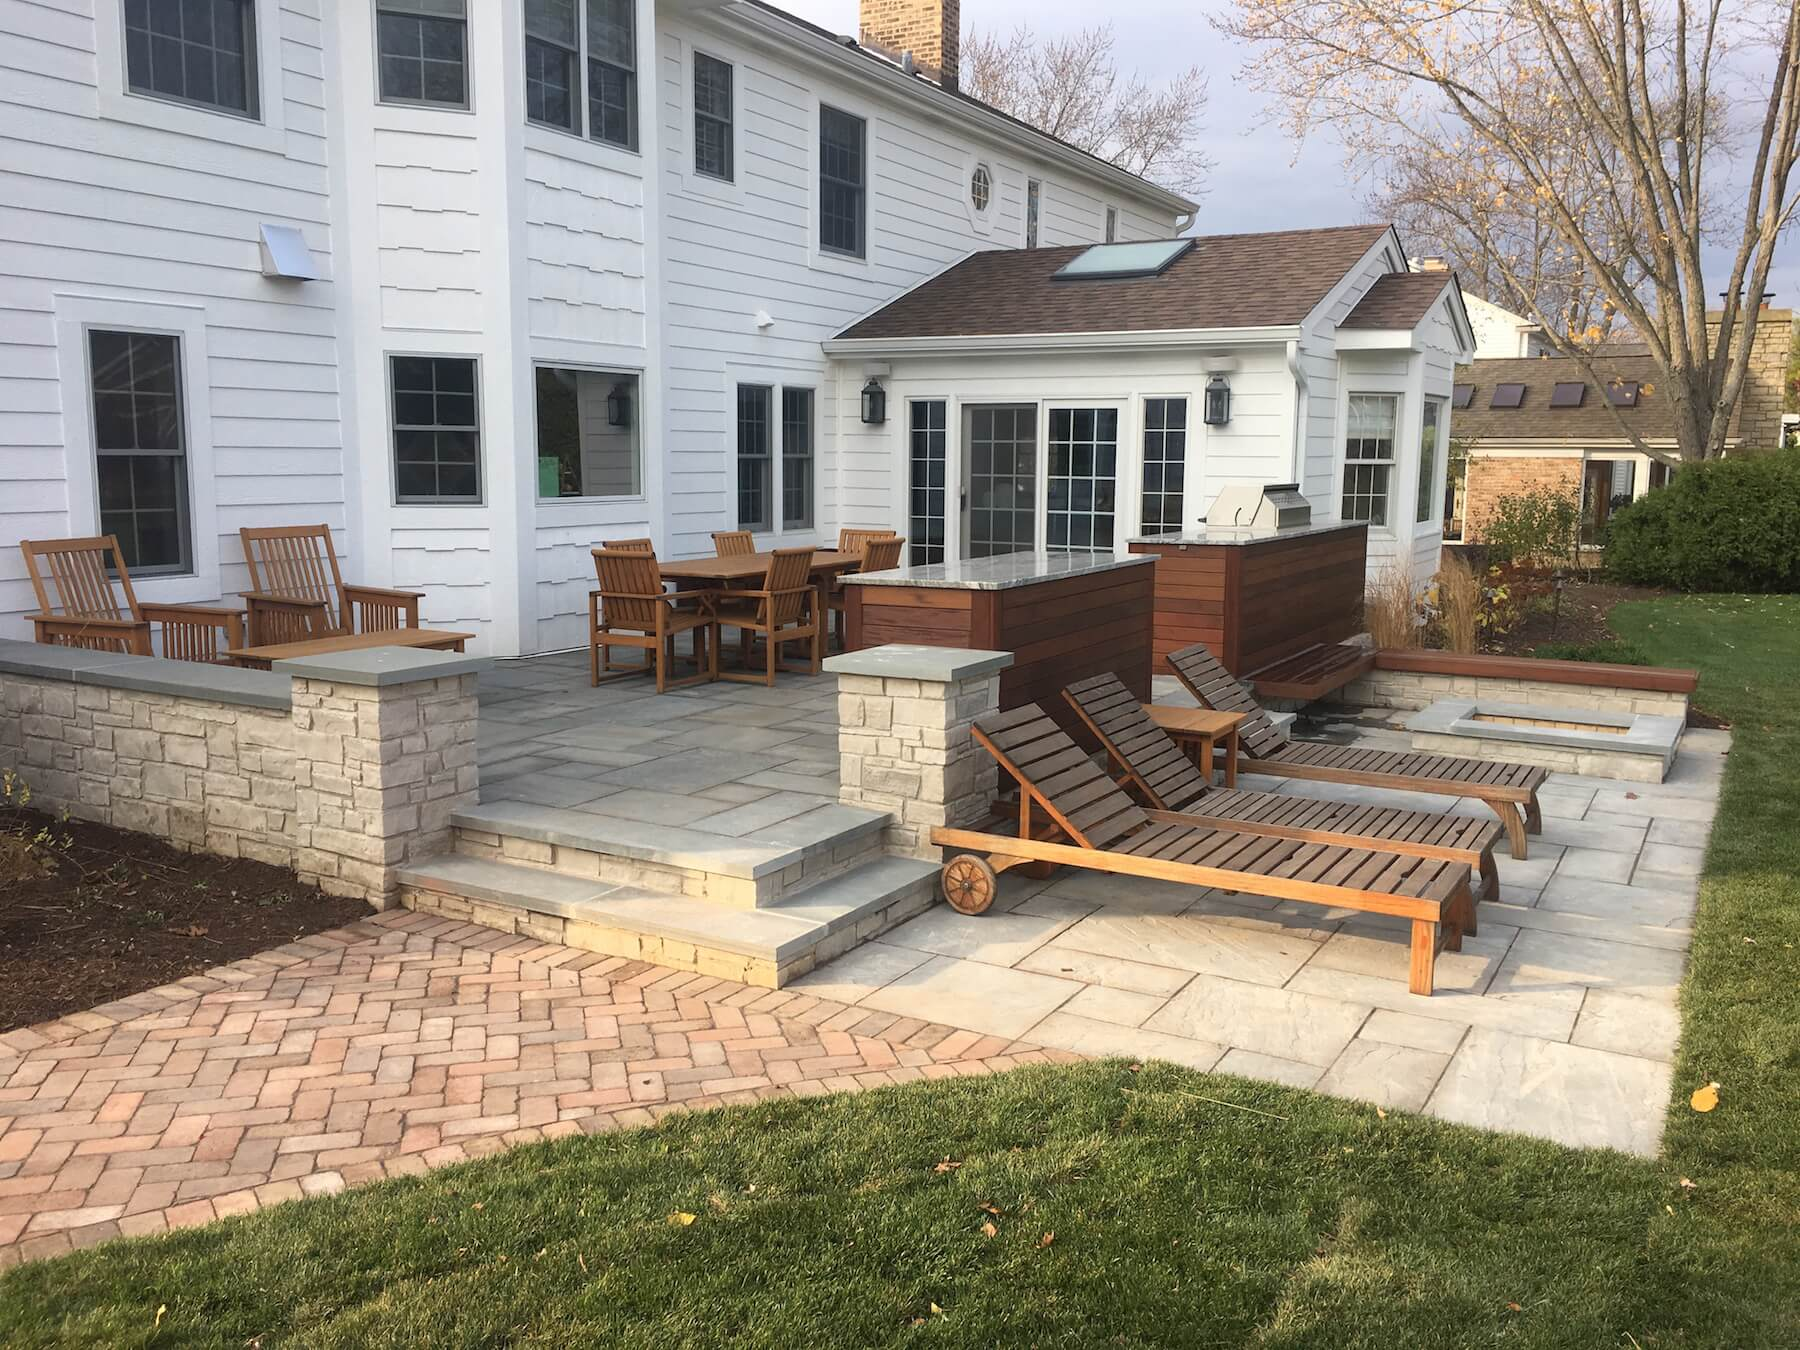 Stone Paver Patio - Denver - Roof Decks, Pergolas, and ... on Rock Patio Designs  id=54726